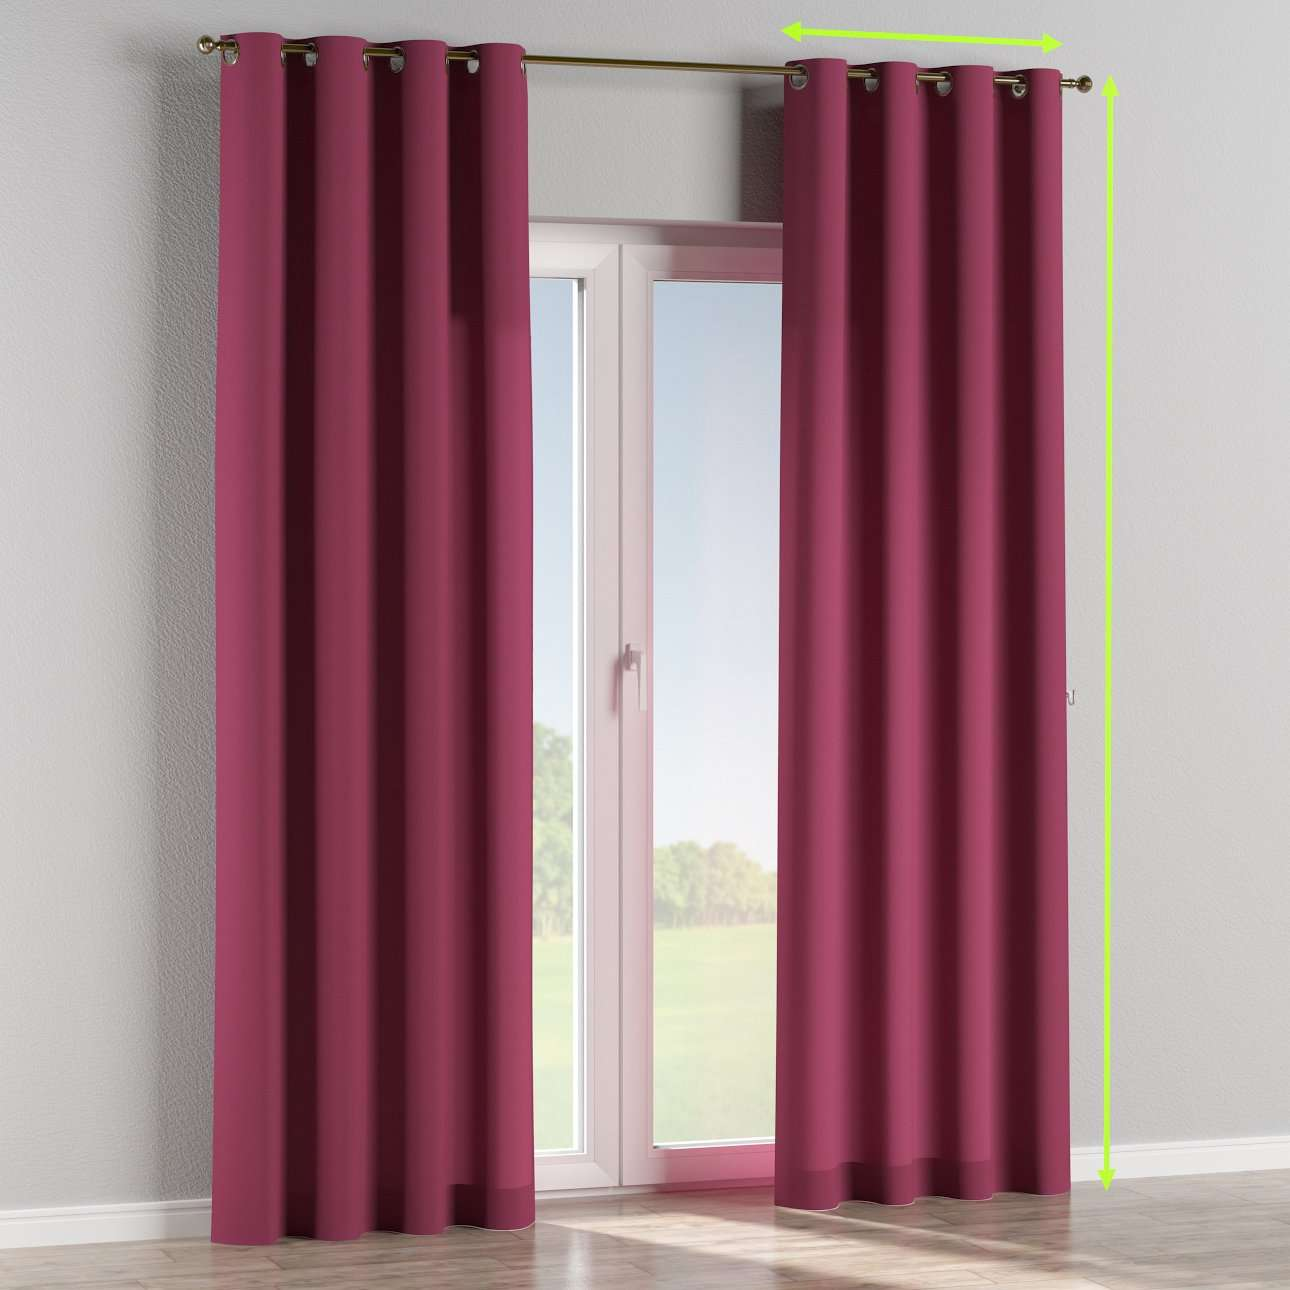 Eyelet curtains in collection Cotton Panama, fabric: 702-32